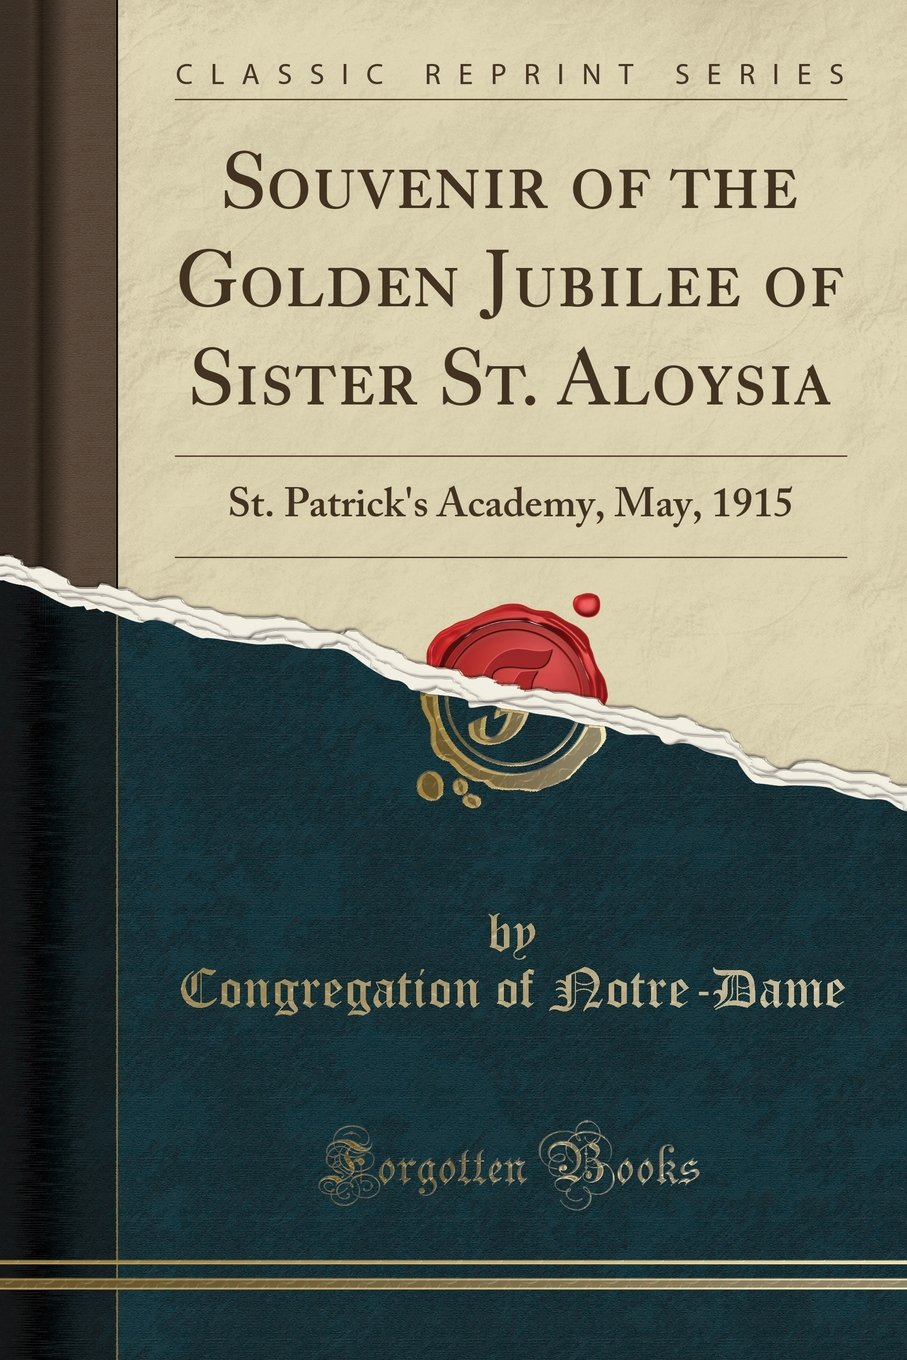 Read Online Souvenir of the Golden Jubilee of Sister St. Aloysia: St. Patrick's Academy, May, 1915 (Classic Reprint) PDF